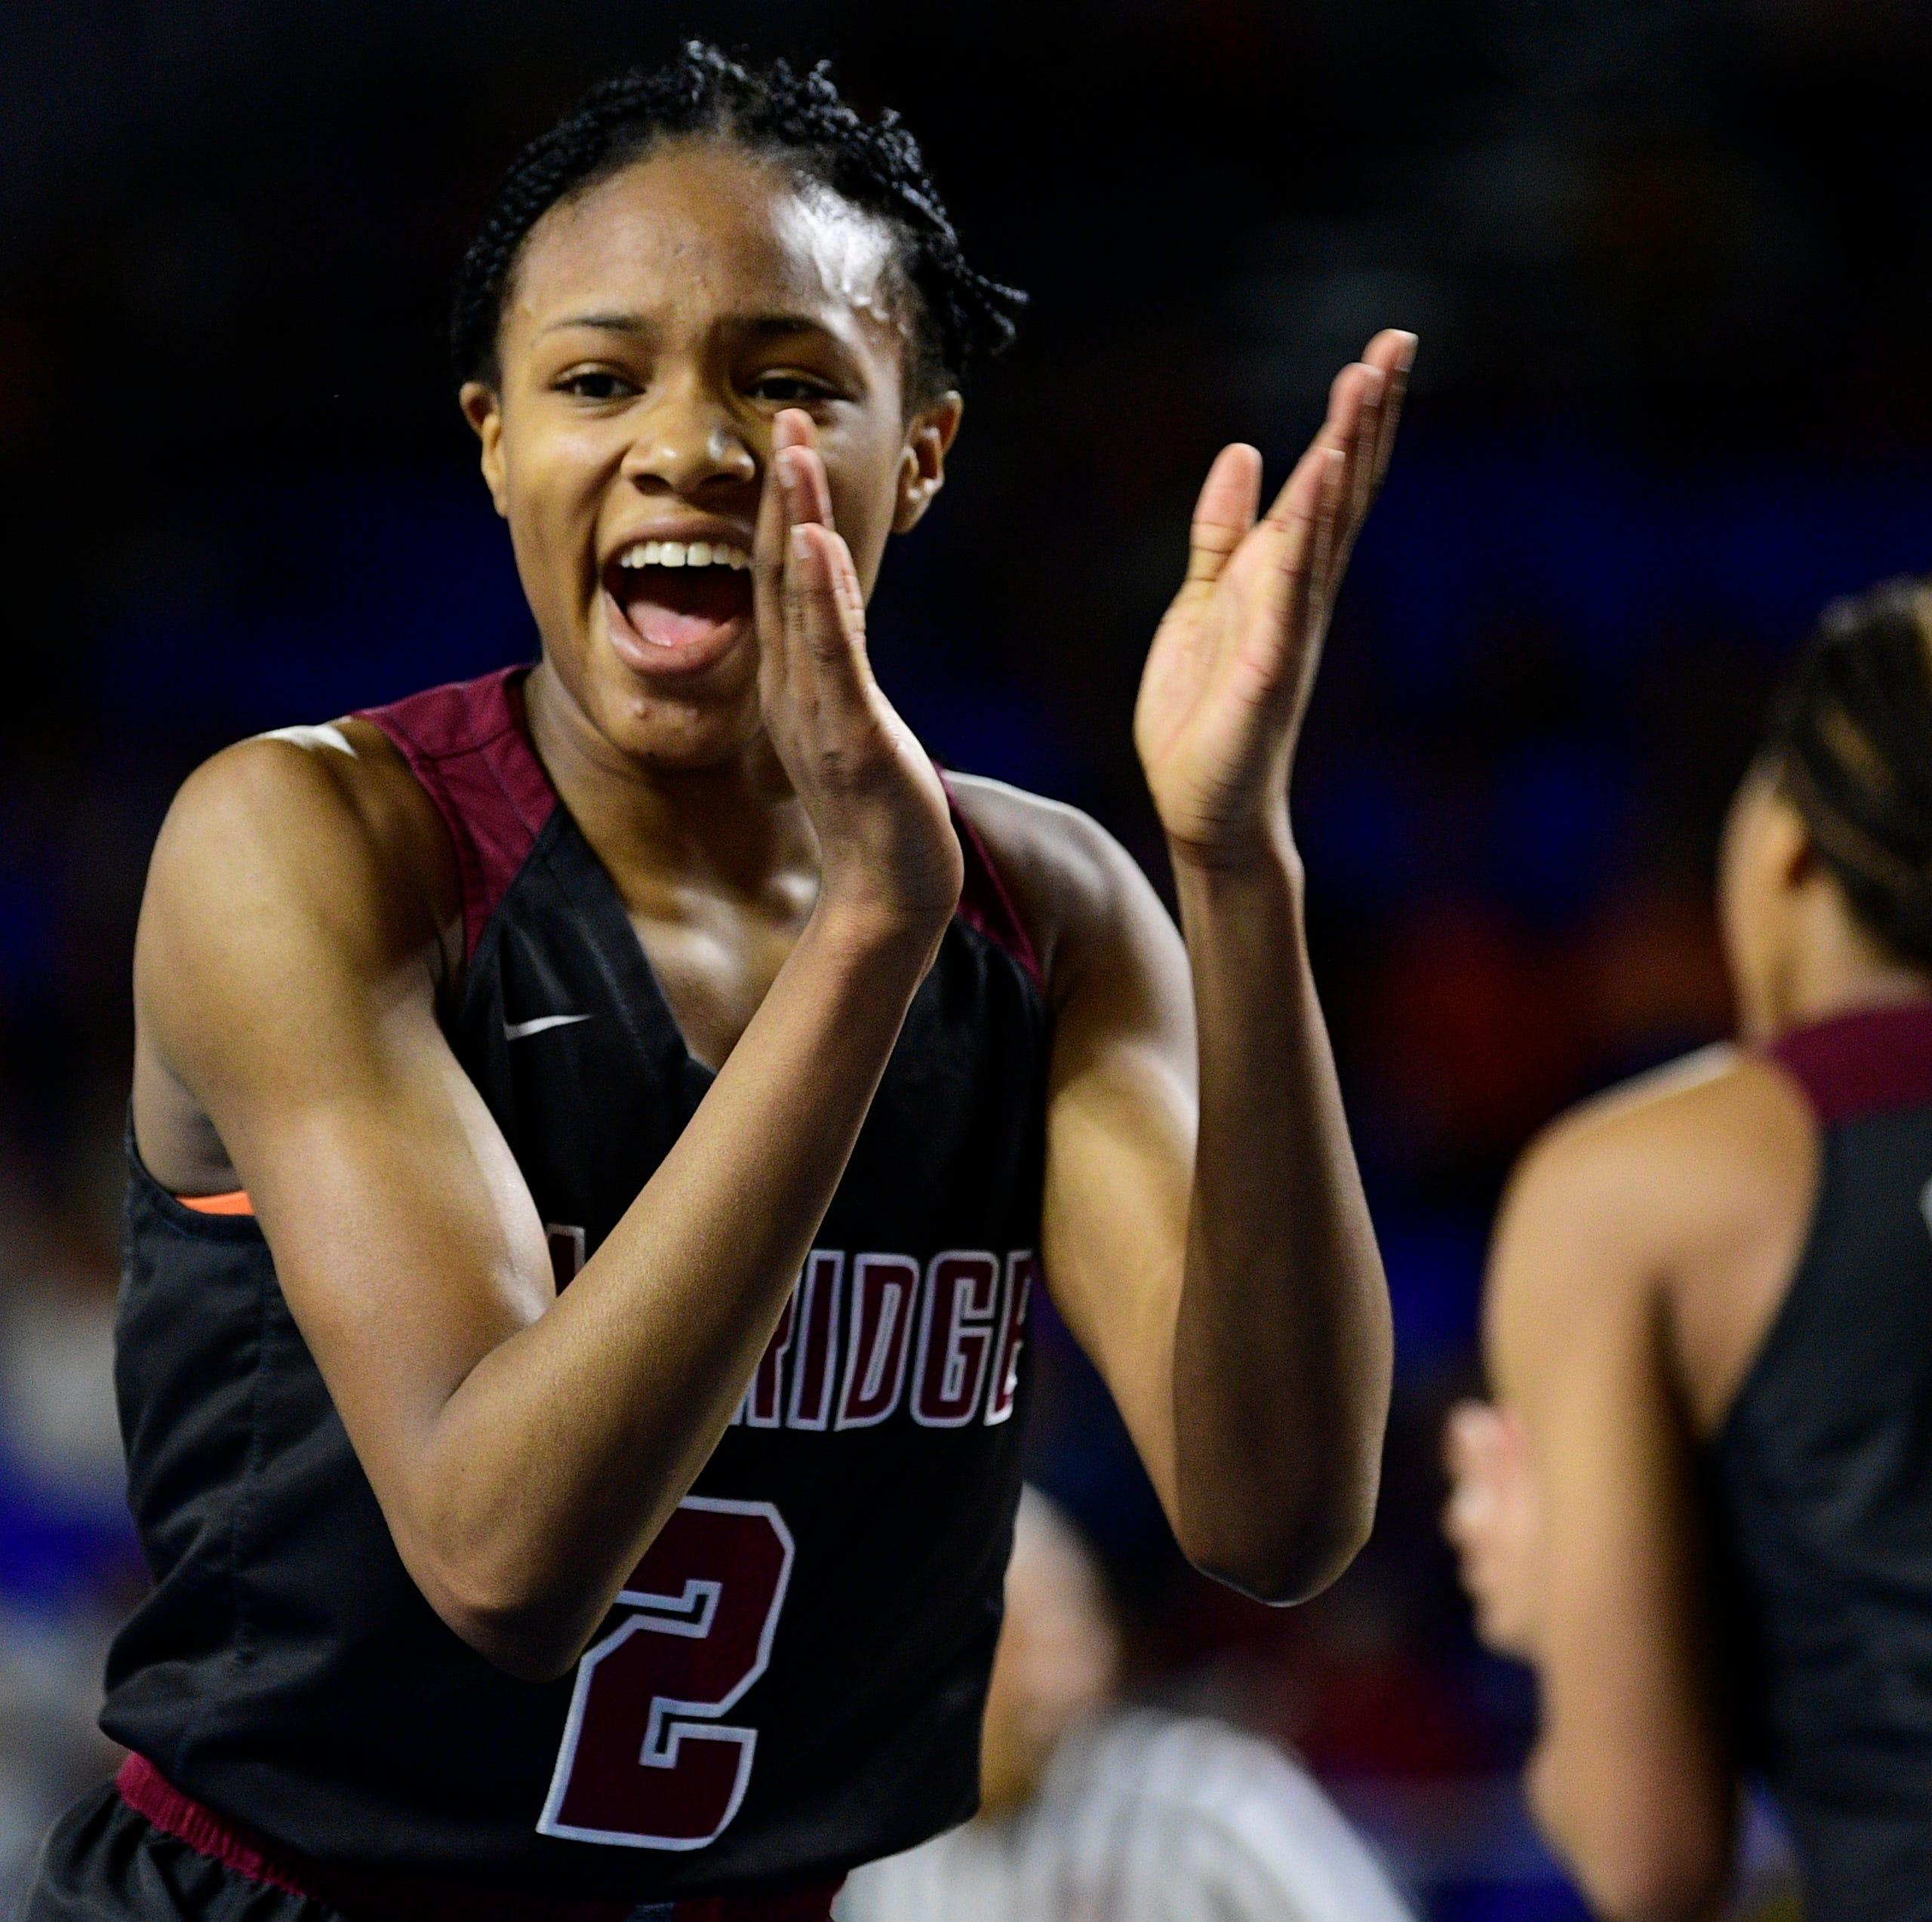 Vote for the PrepXtra girls basketball player for the Division I state tournament